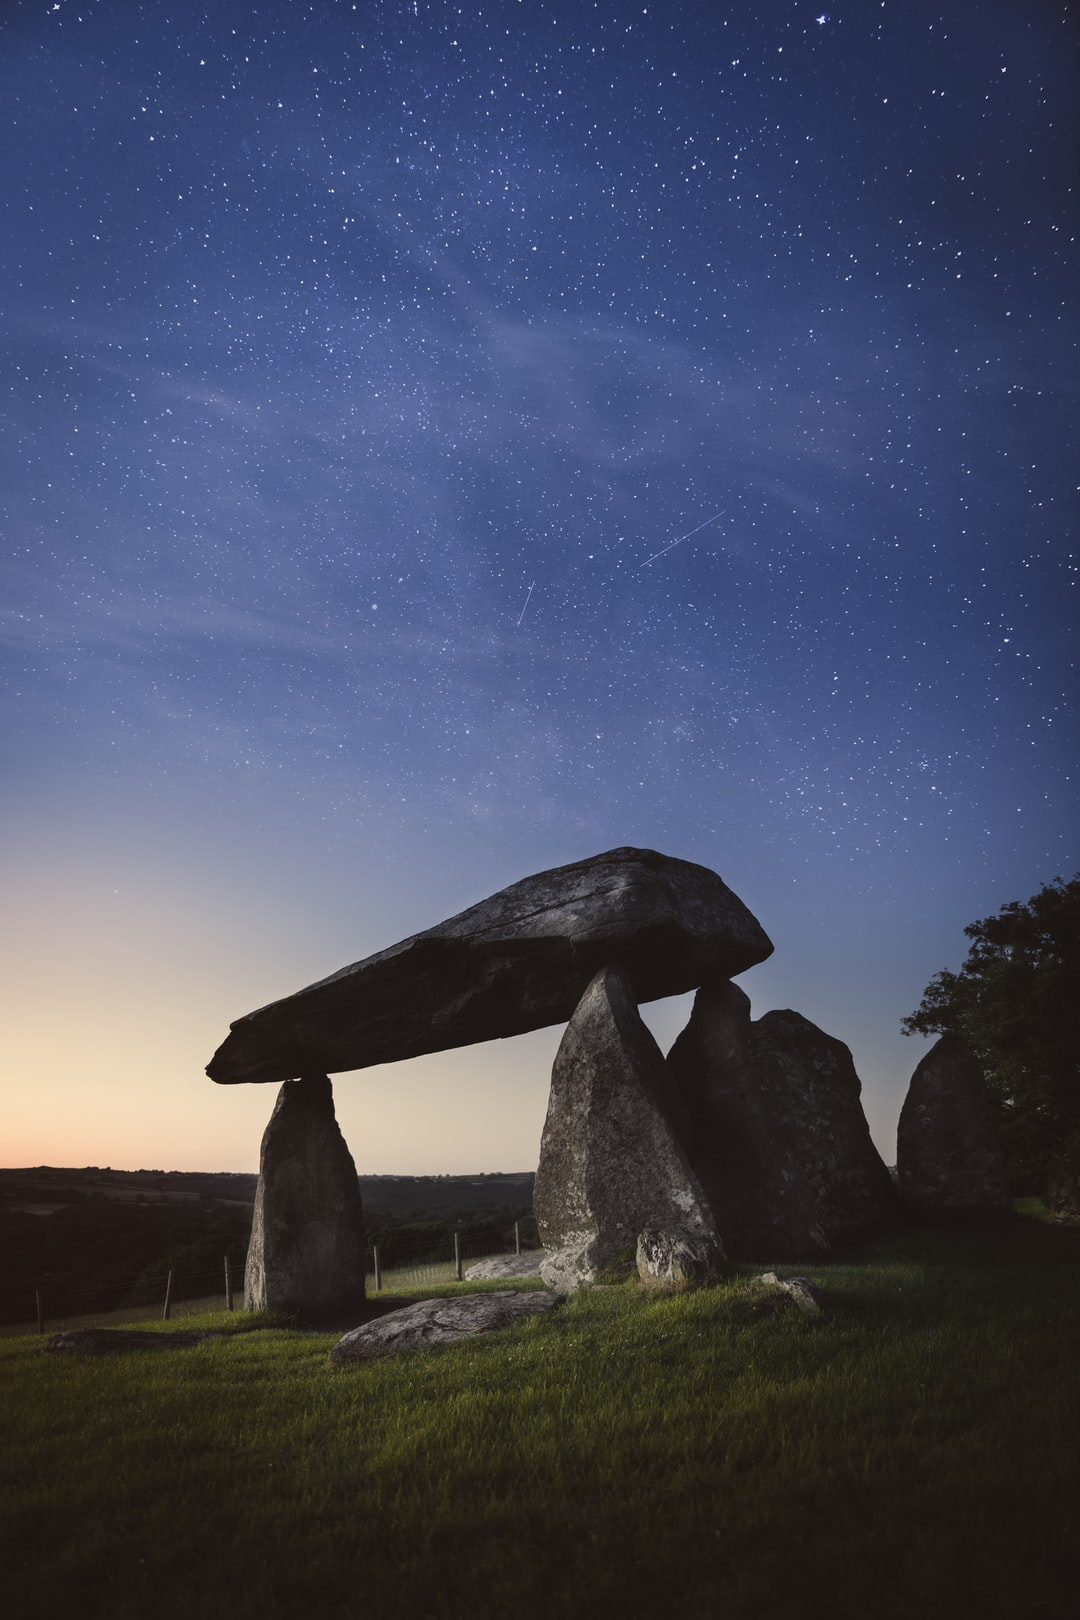 Pentre Ifan burial chamber in Pembrokeshire under the starry night sky